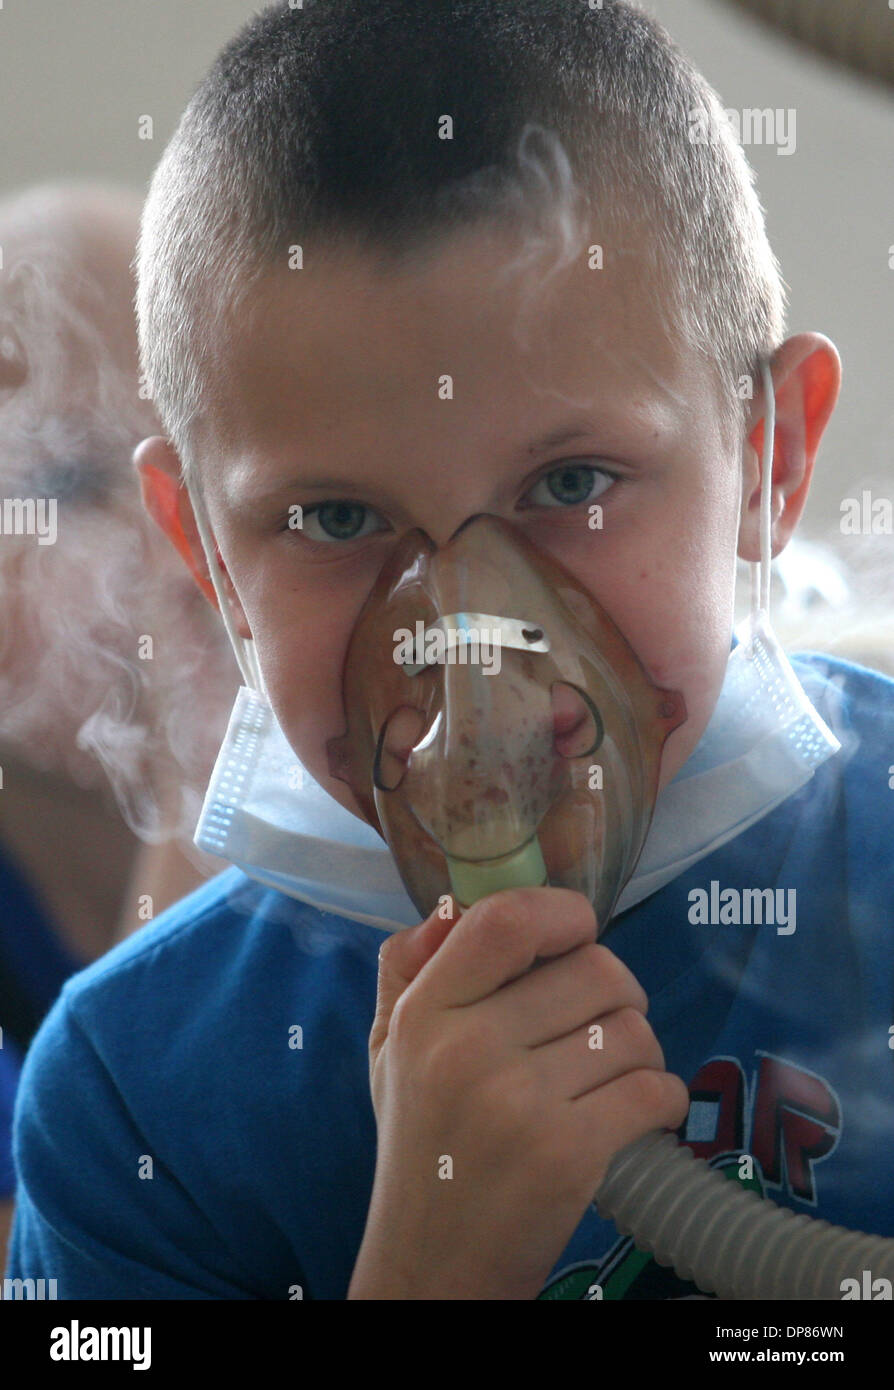 Dec 21, 2005 - Borovliany, Belarus - (File Photo) Irradiated kids, victims of Chernobyl disaster, undergoing medical treatment in oncologic centre in Borovliany settlement near Minsk. (Credit Image: © PhotoXpress/ZUMA Press) RESTRICTIONS: Tabloids Sales Out - Stock Image